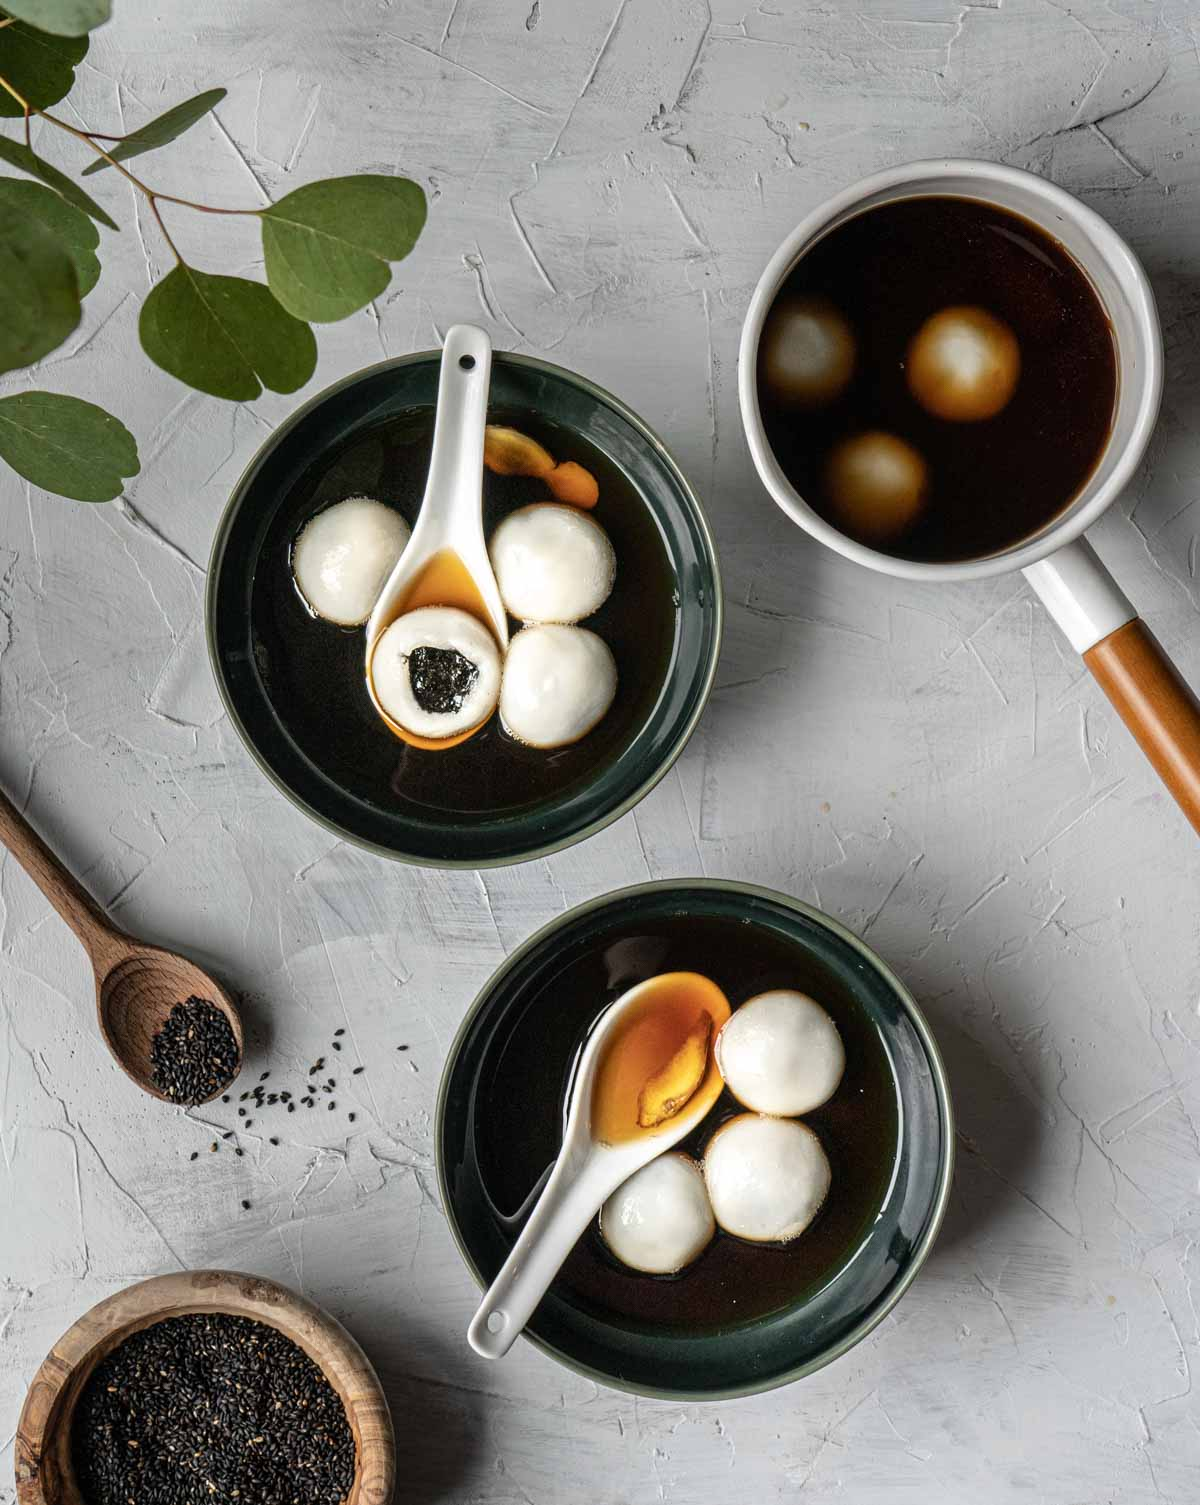 Two bowls and one sauce pan with tang yuan in it and a bowl of black sesame seeds on the side.